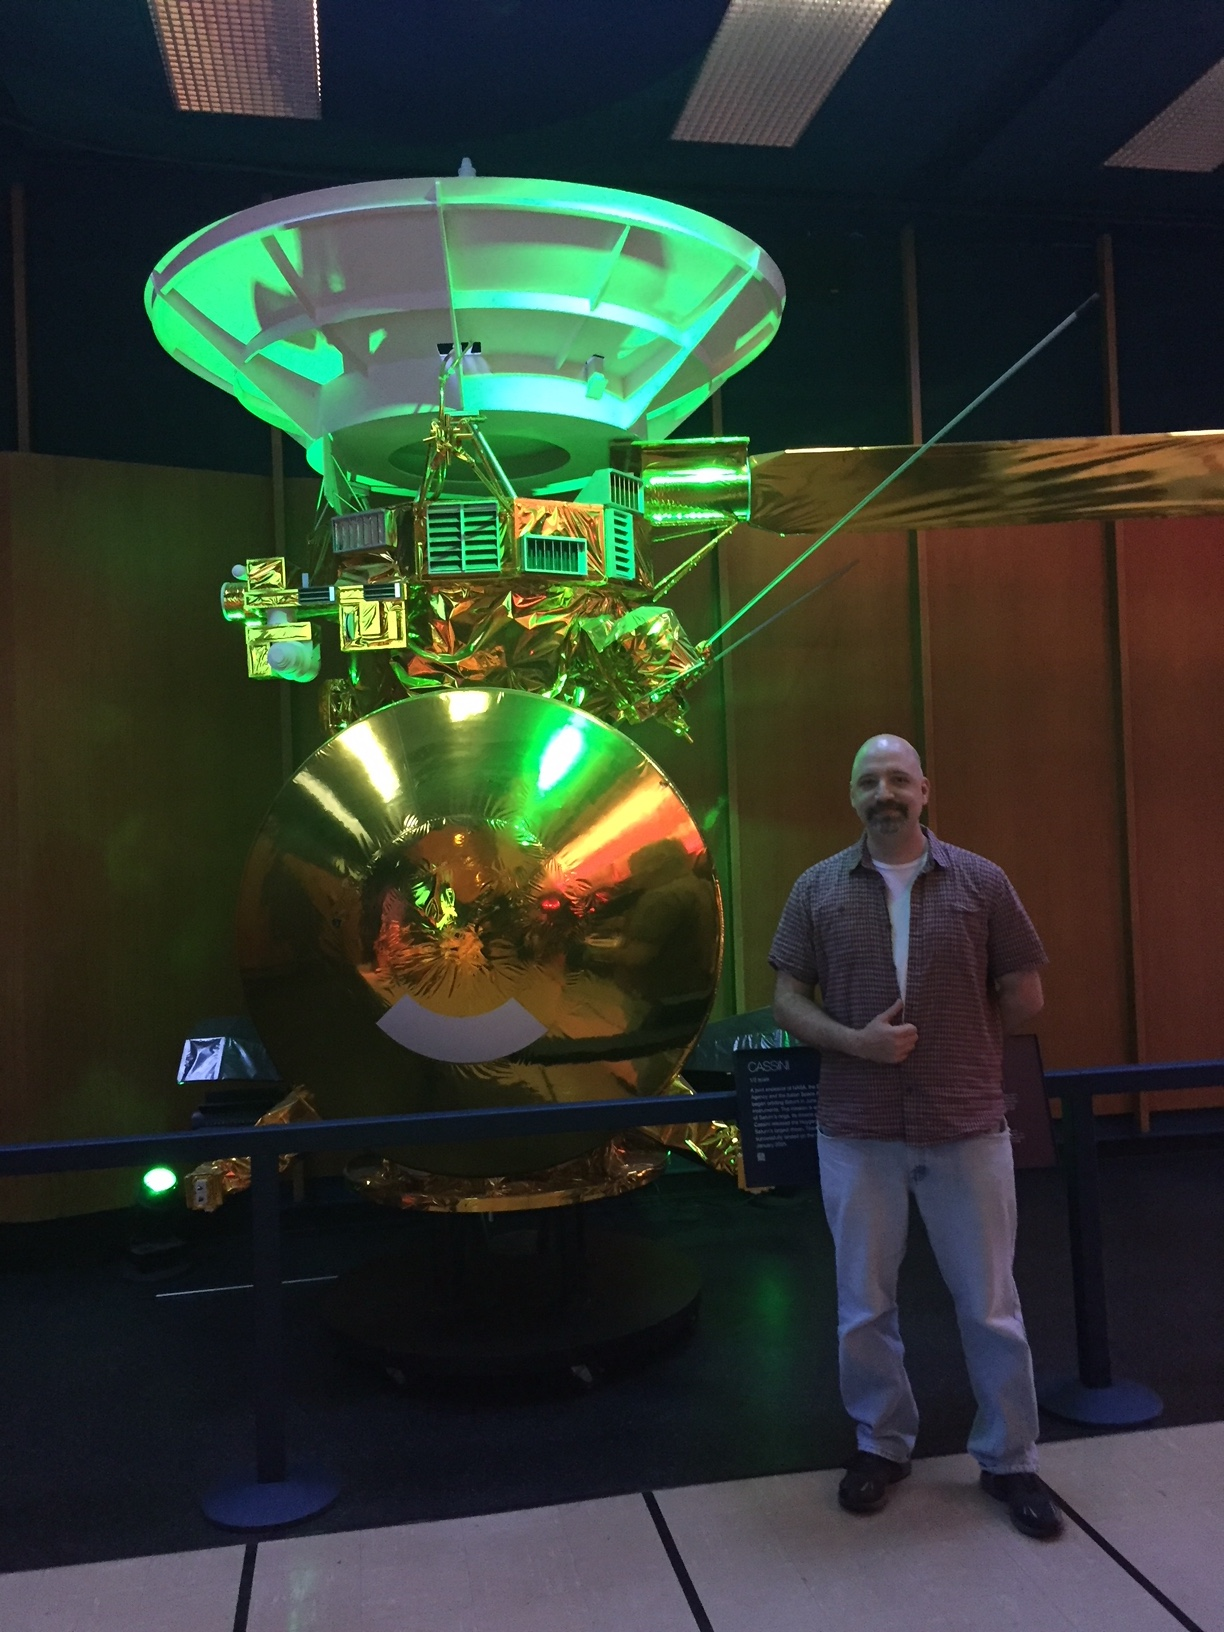 Warren with the Cassini spacecraft model